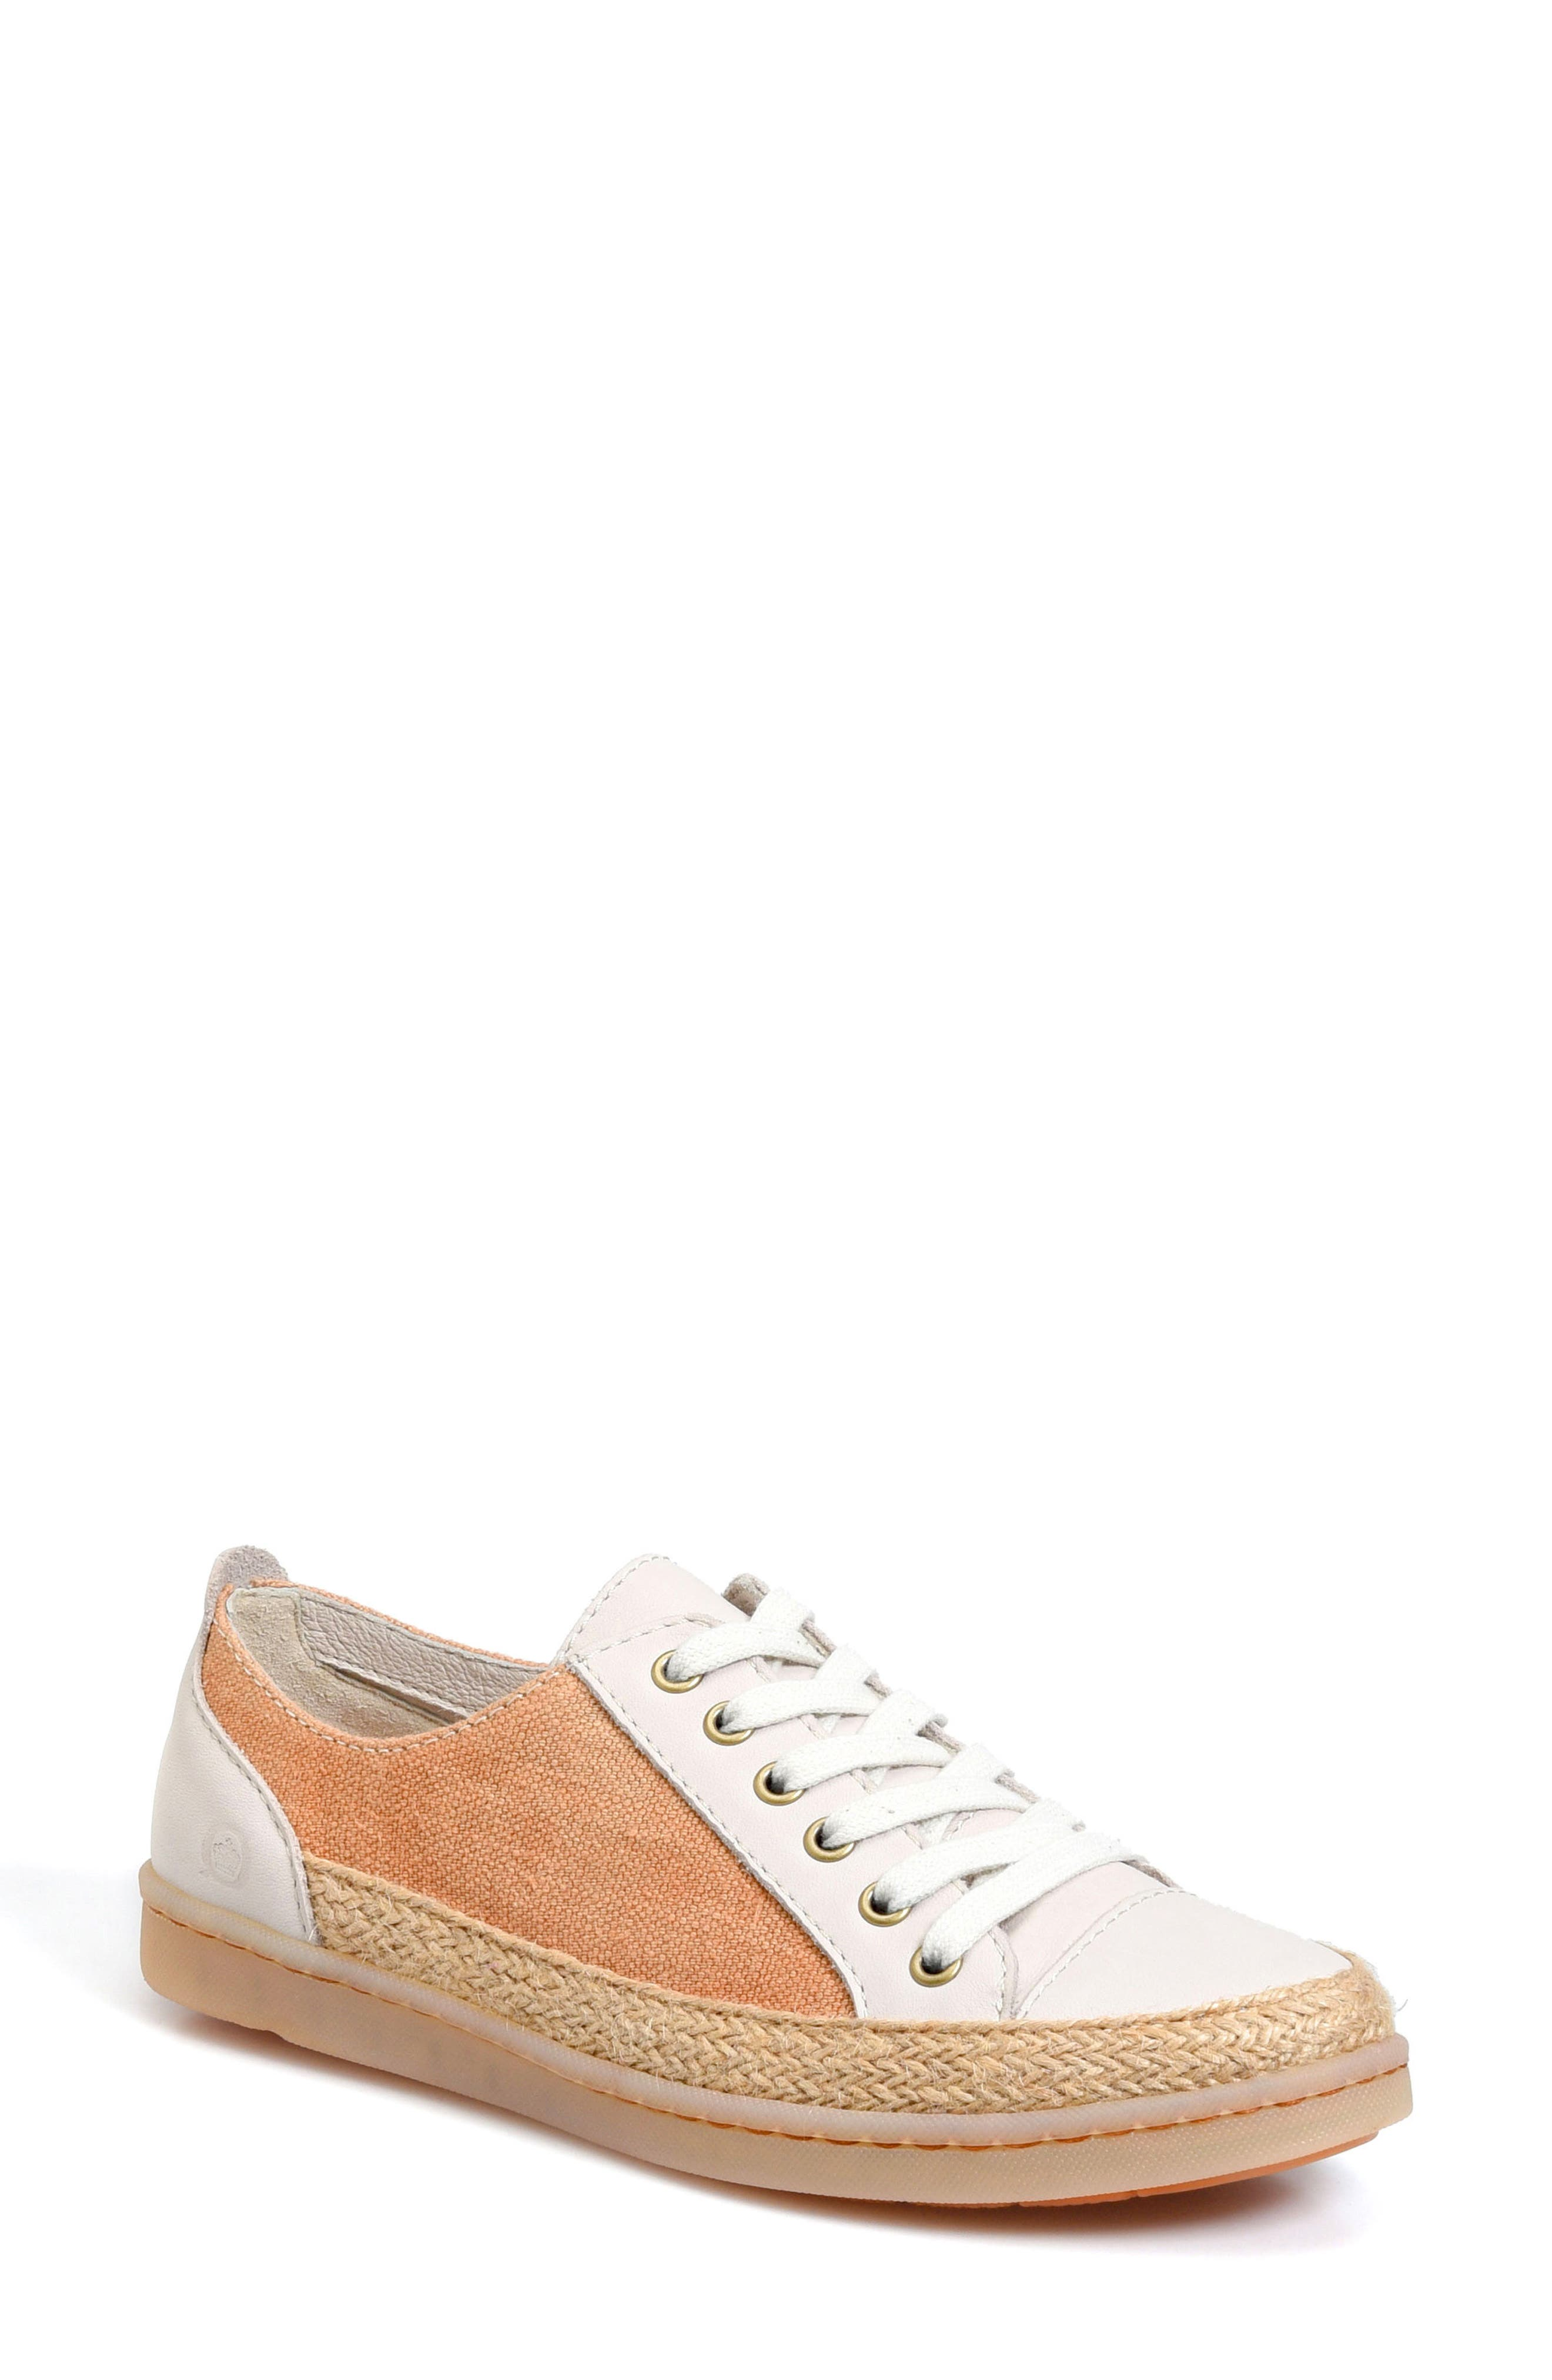 Corfield Sneaker,                         Main,                         color, Orange/ Cream Leather